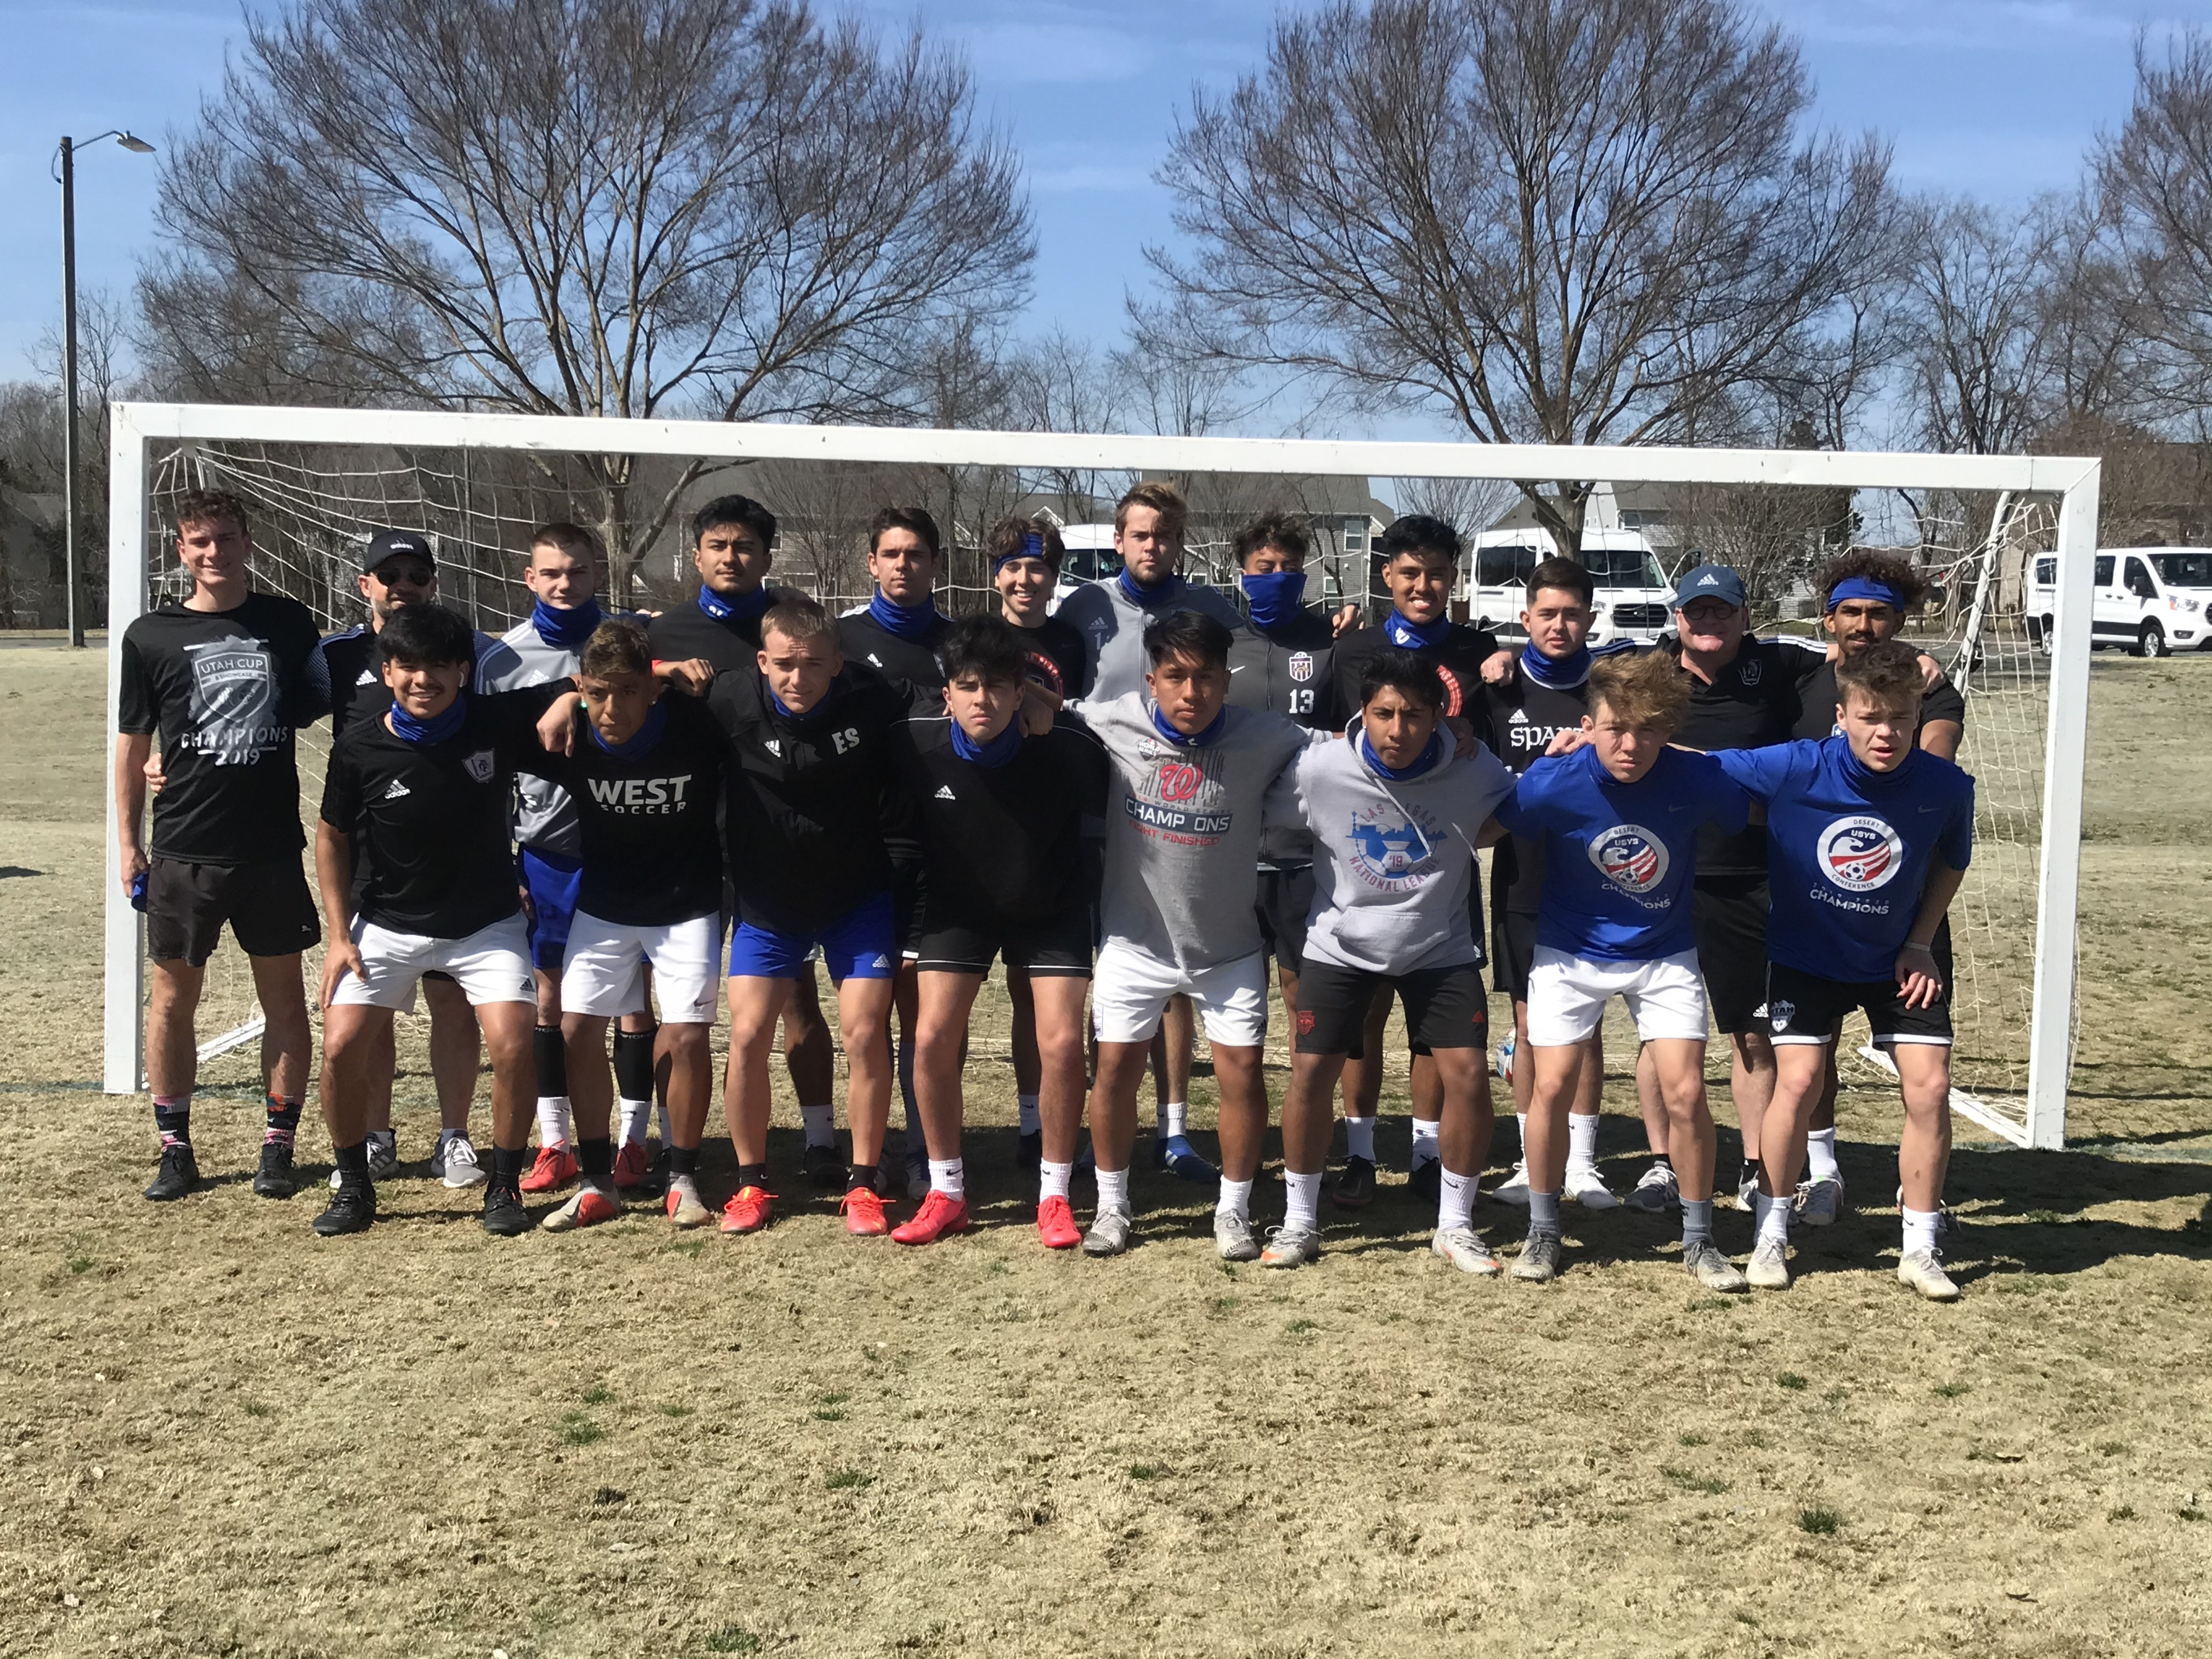 Sparta B03/02 Premier MD are at Nationals